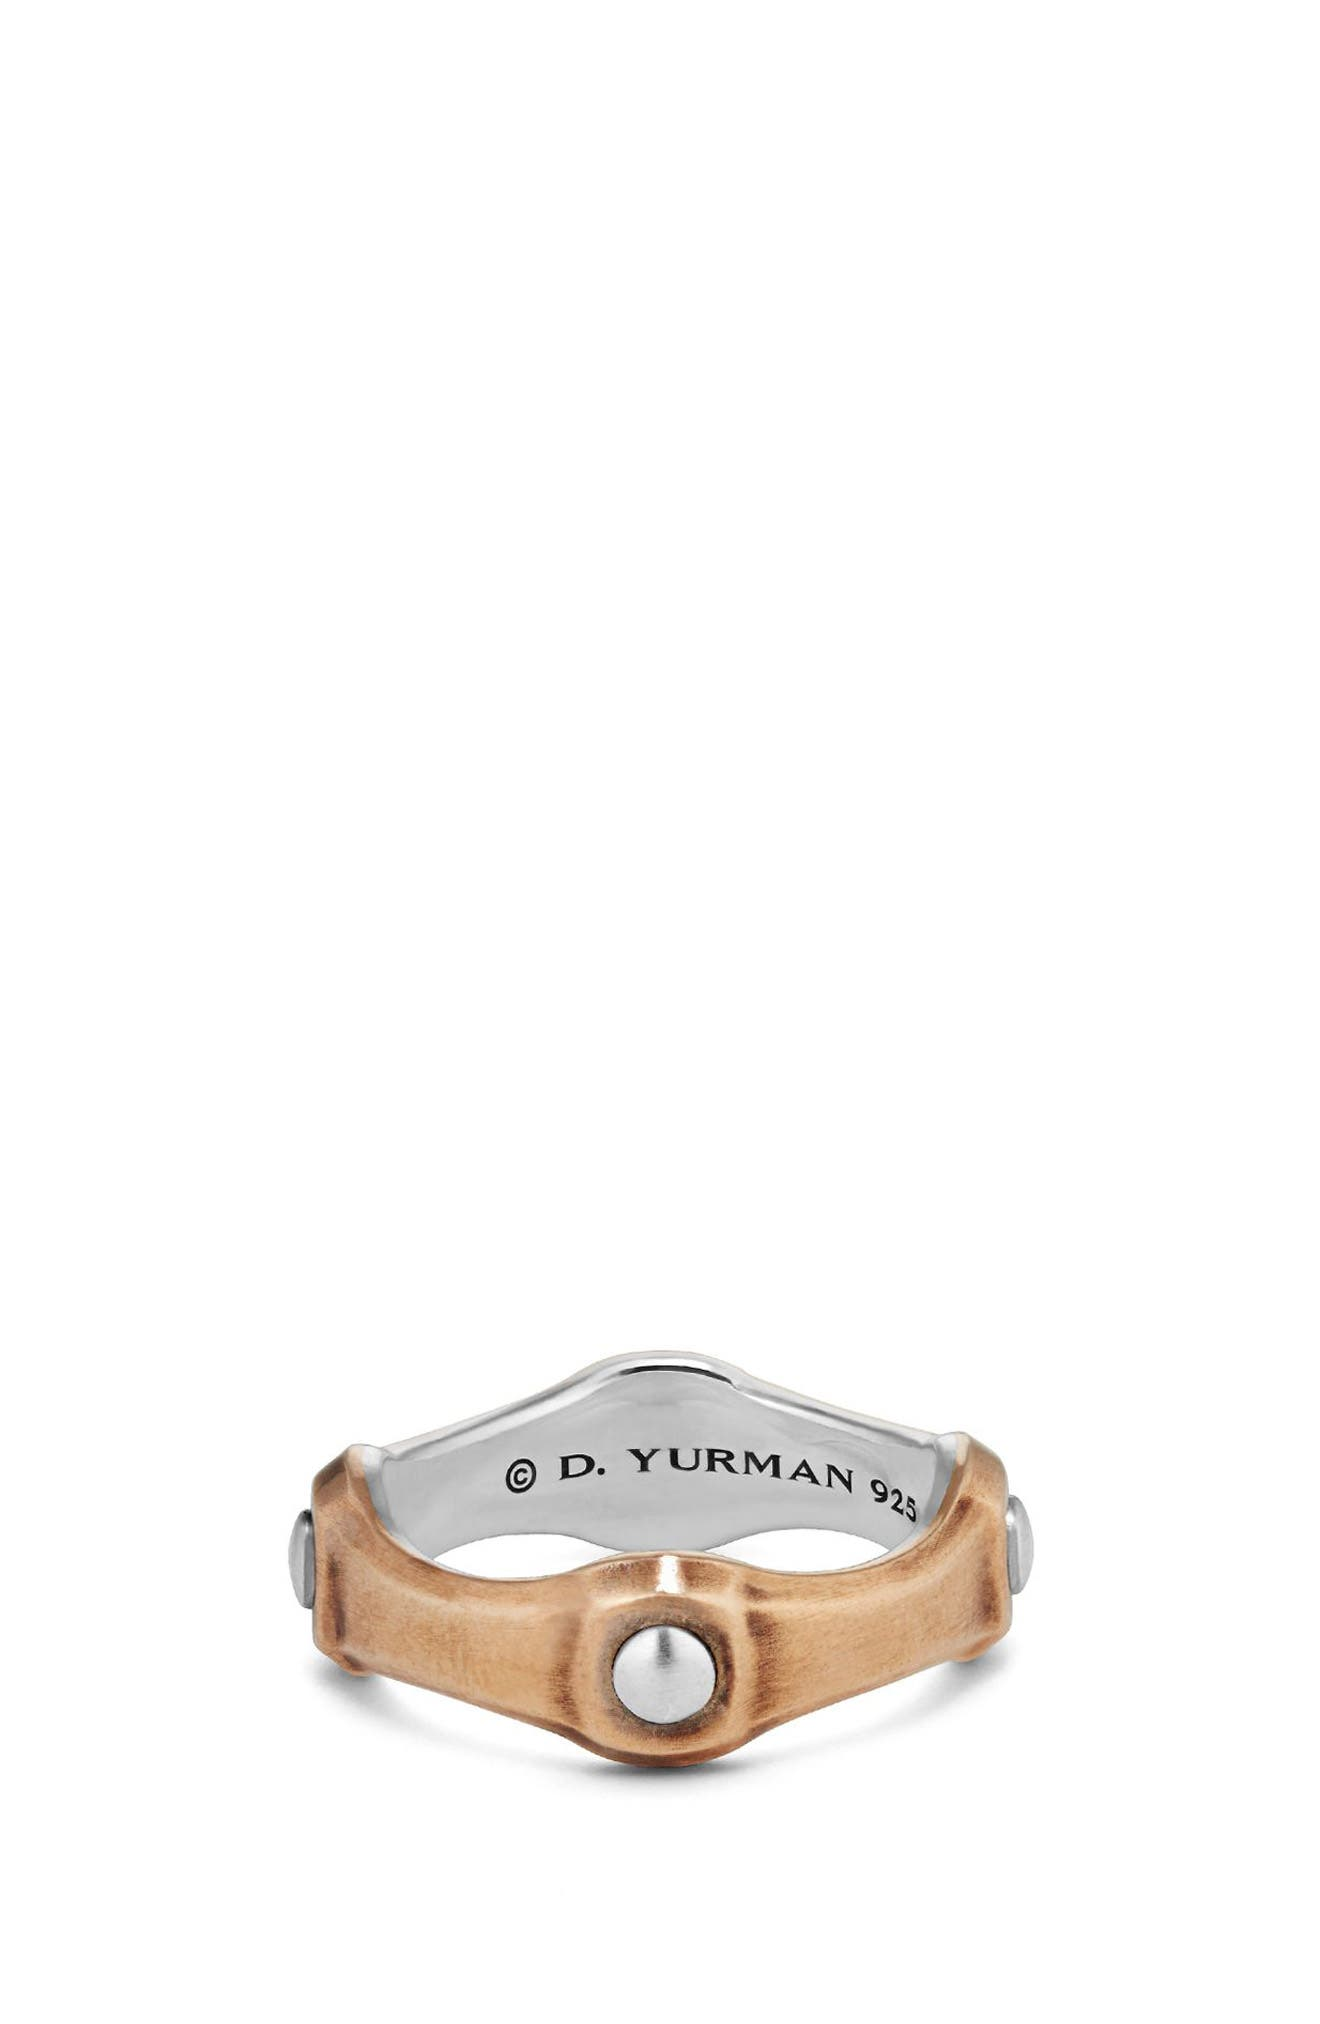 DAVID YURMAN Anvil Band Ring with Bronze, 8mm